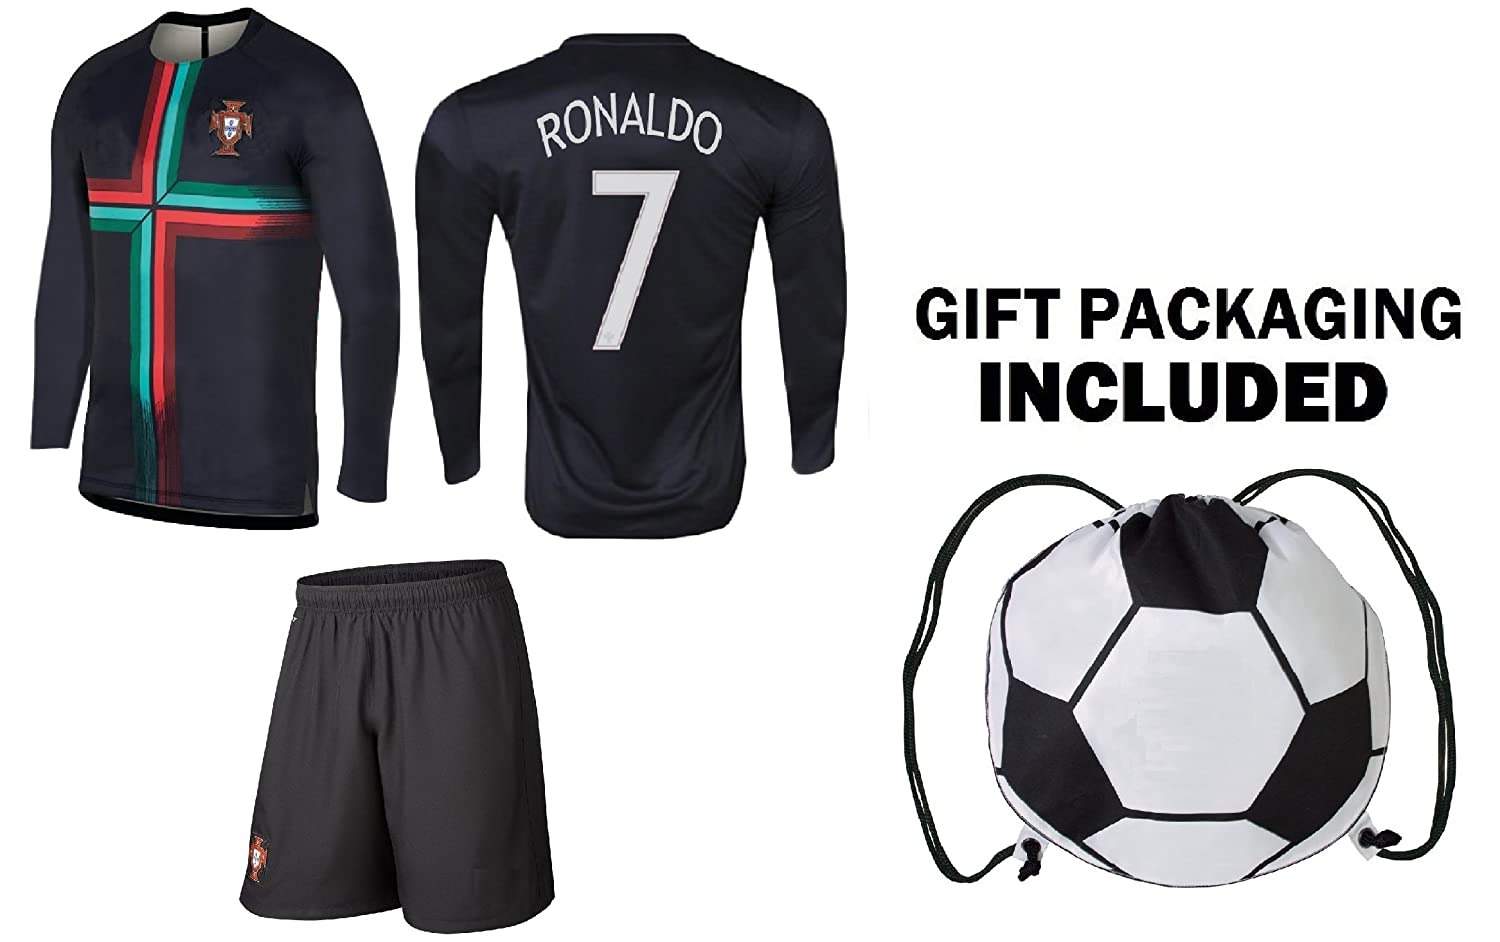 promo code 74614 29658 PFC Ronaldo Jersey Portugal Away Long Sleeve Kids Soccer Cristiano Ronaldo  Jersey Soccer Gift Set Youth Sizes ✓ Premium Quality ✓ Soccer Backpack Gift  ...